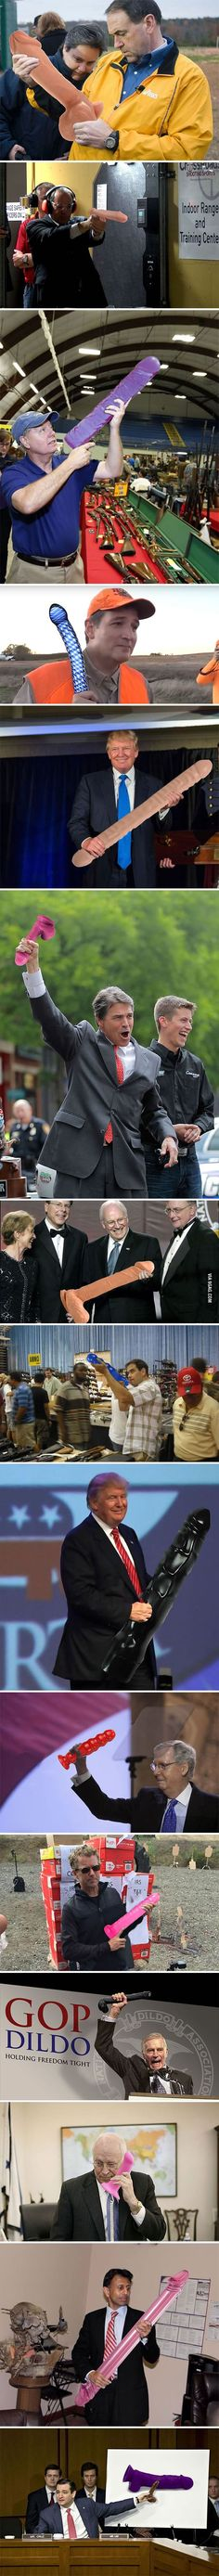 Some dude replaced guns with DILDOS in photos of Republican politicians